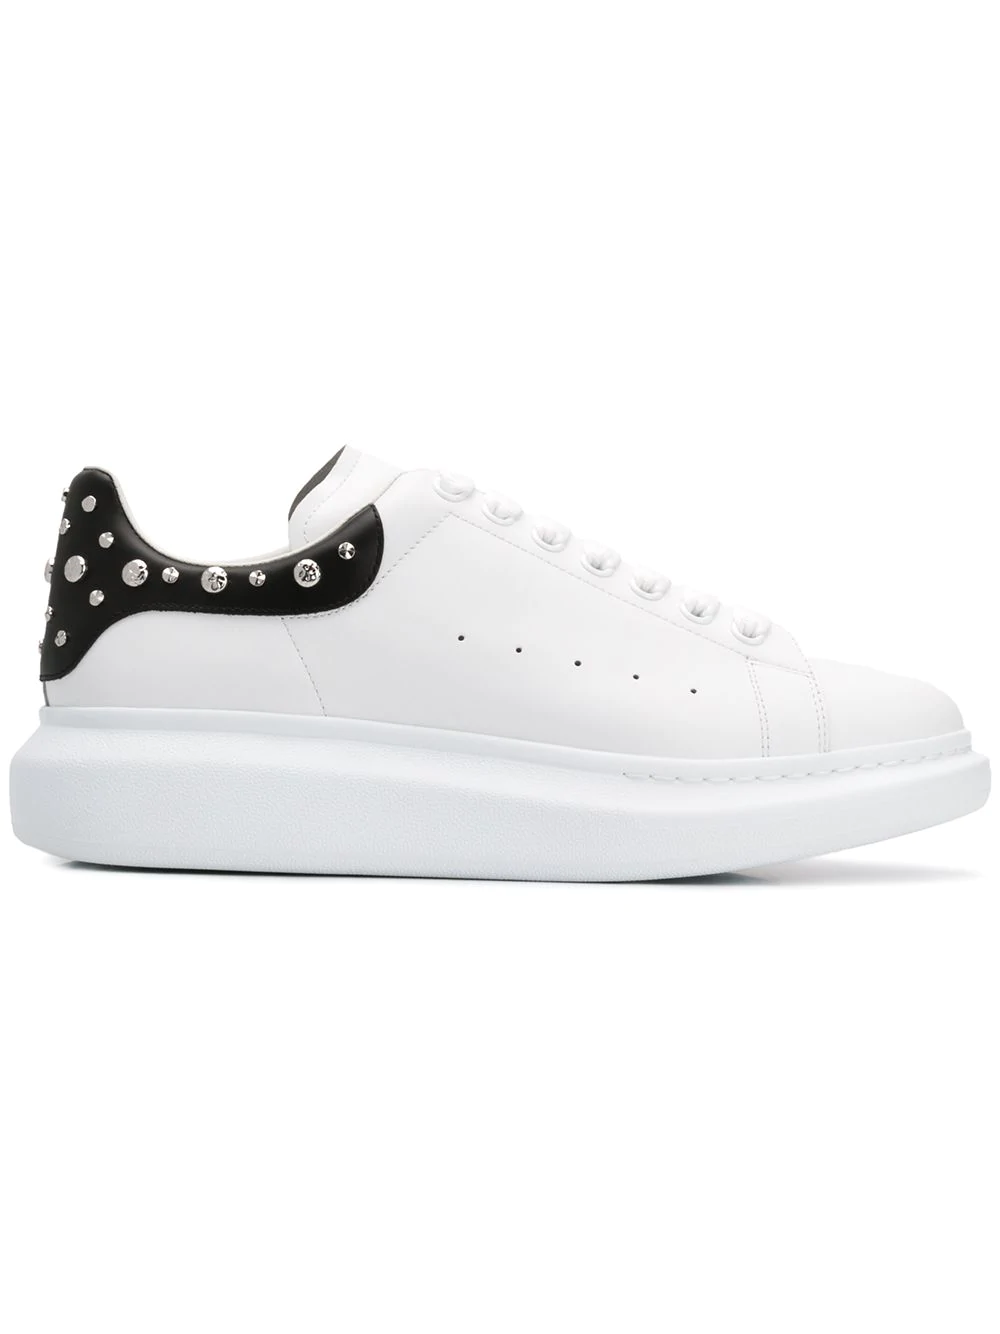 1e862b62fa17 Alexander Mcqueen Men s Larry Leather Lace-Up Platform Sneakers With Spiked  Trim